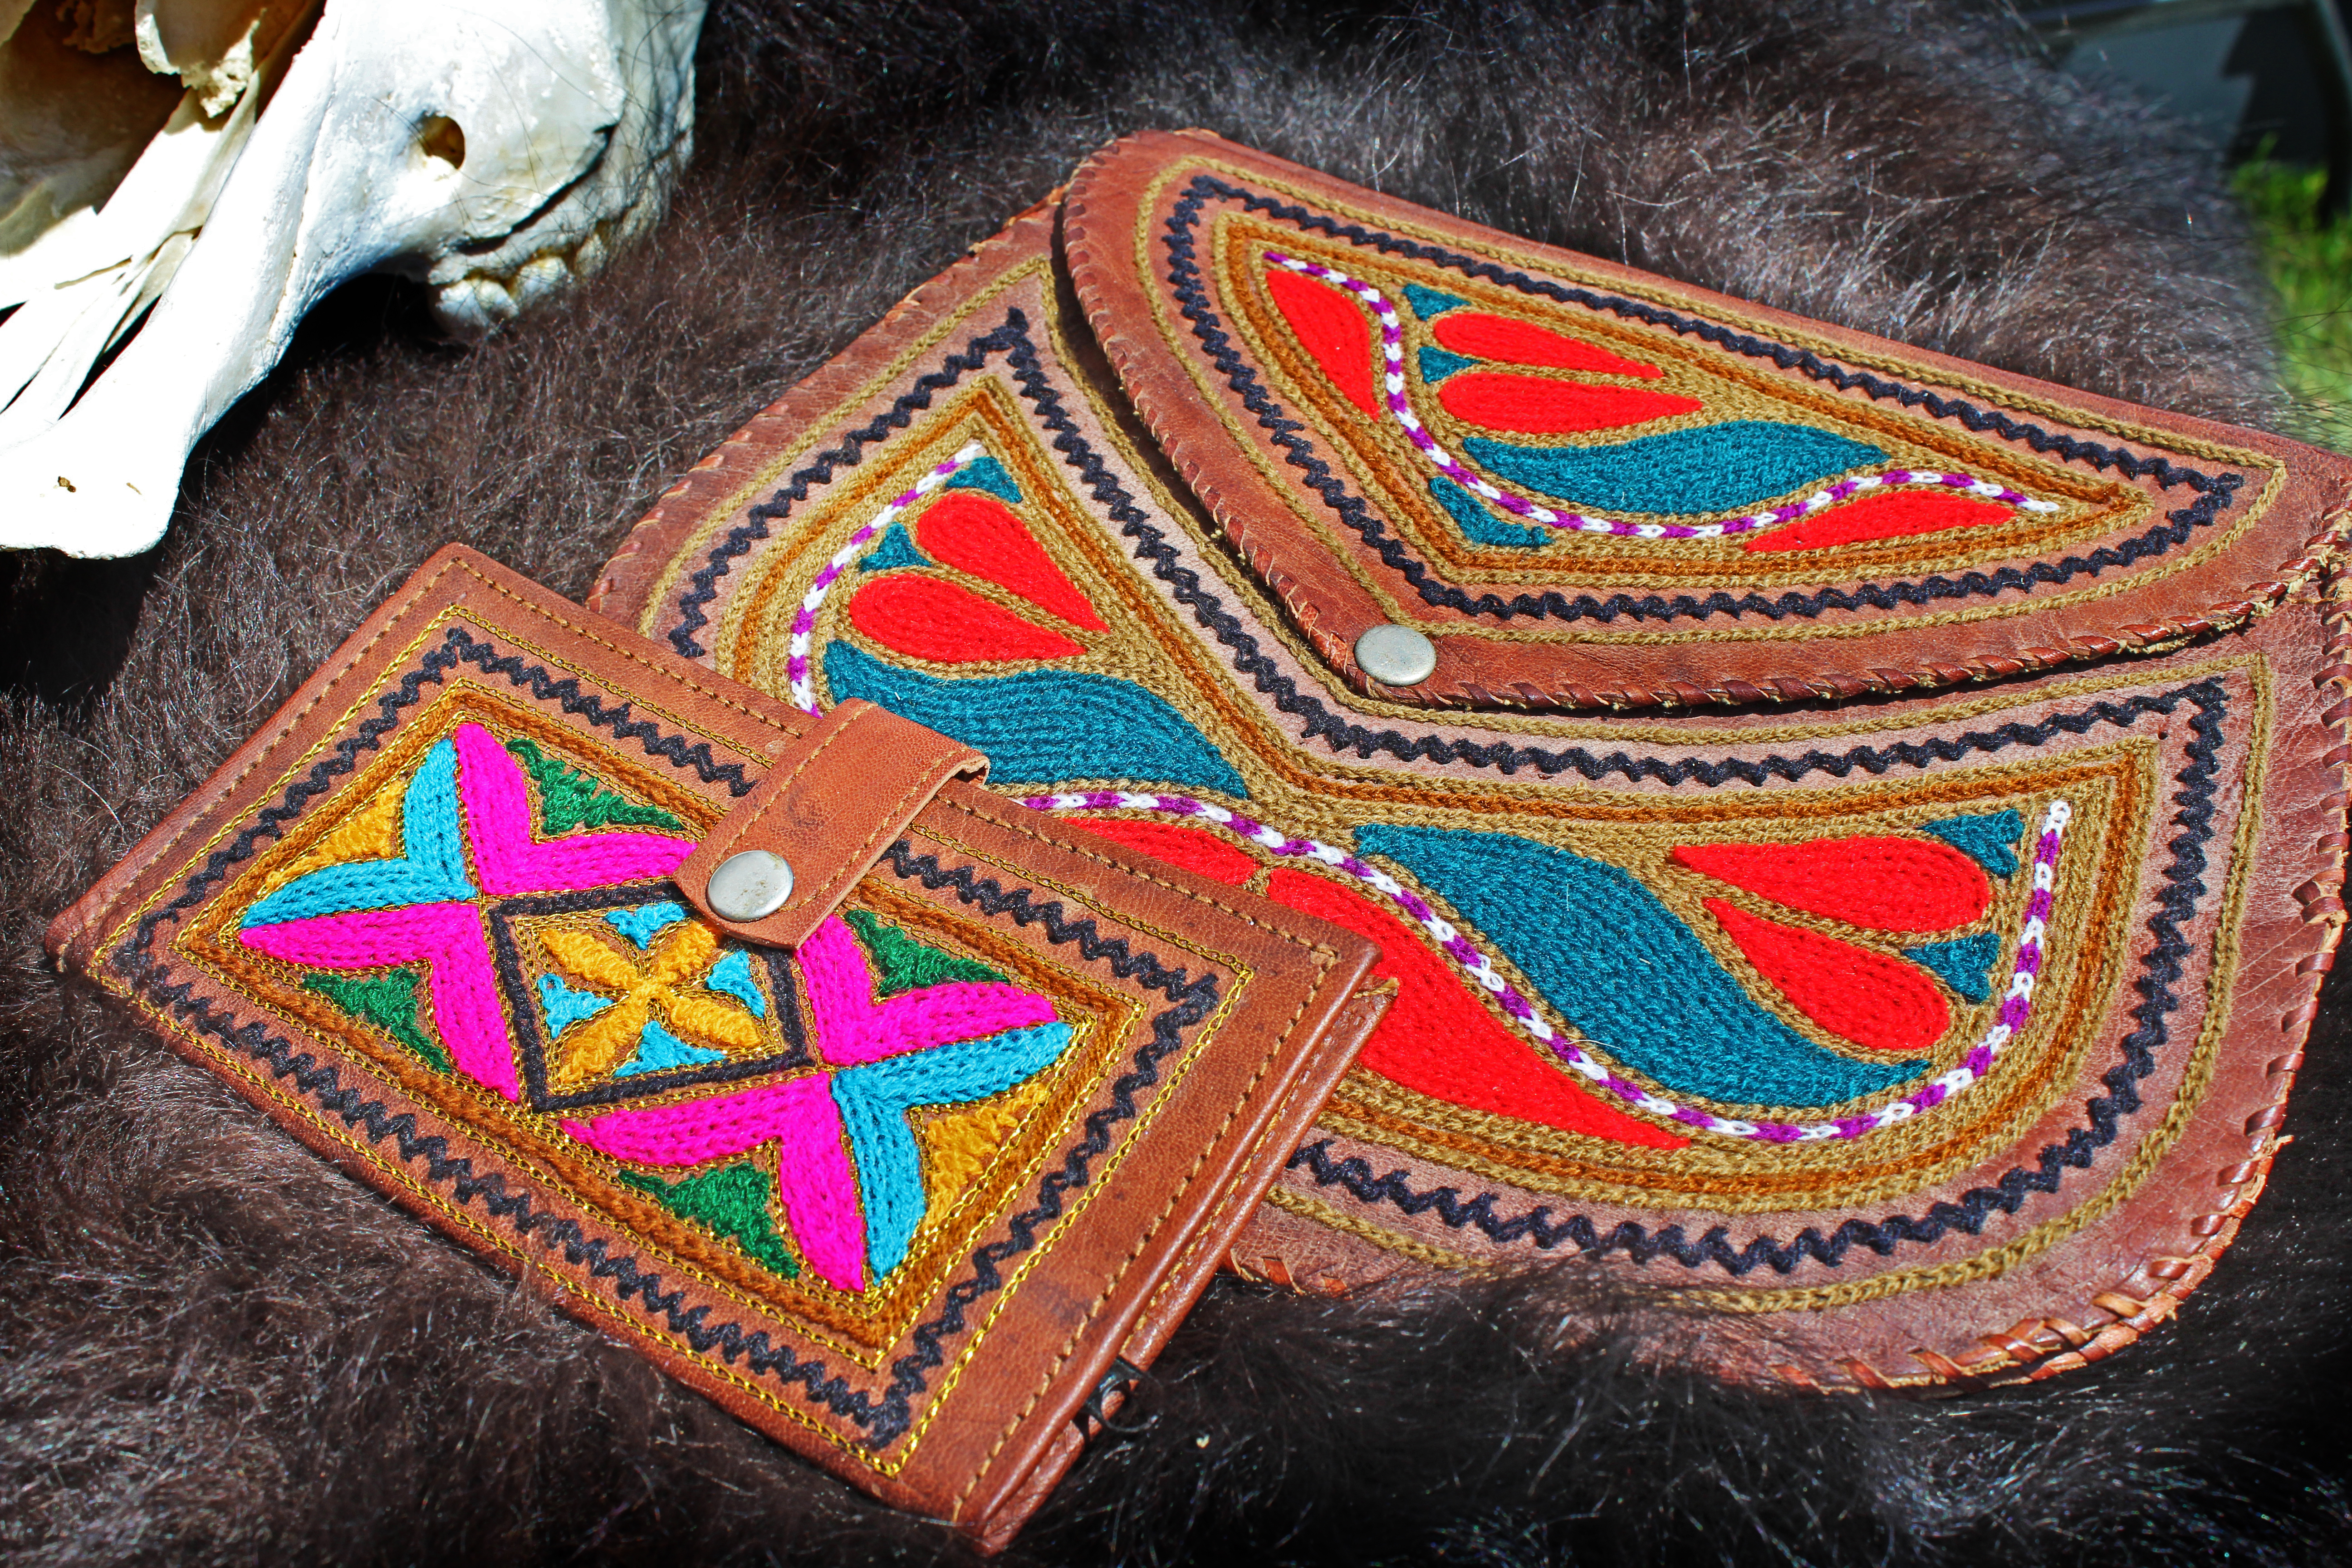 Items made from Yak